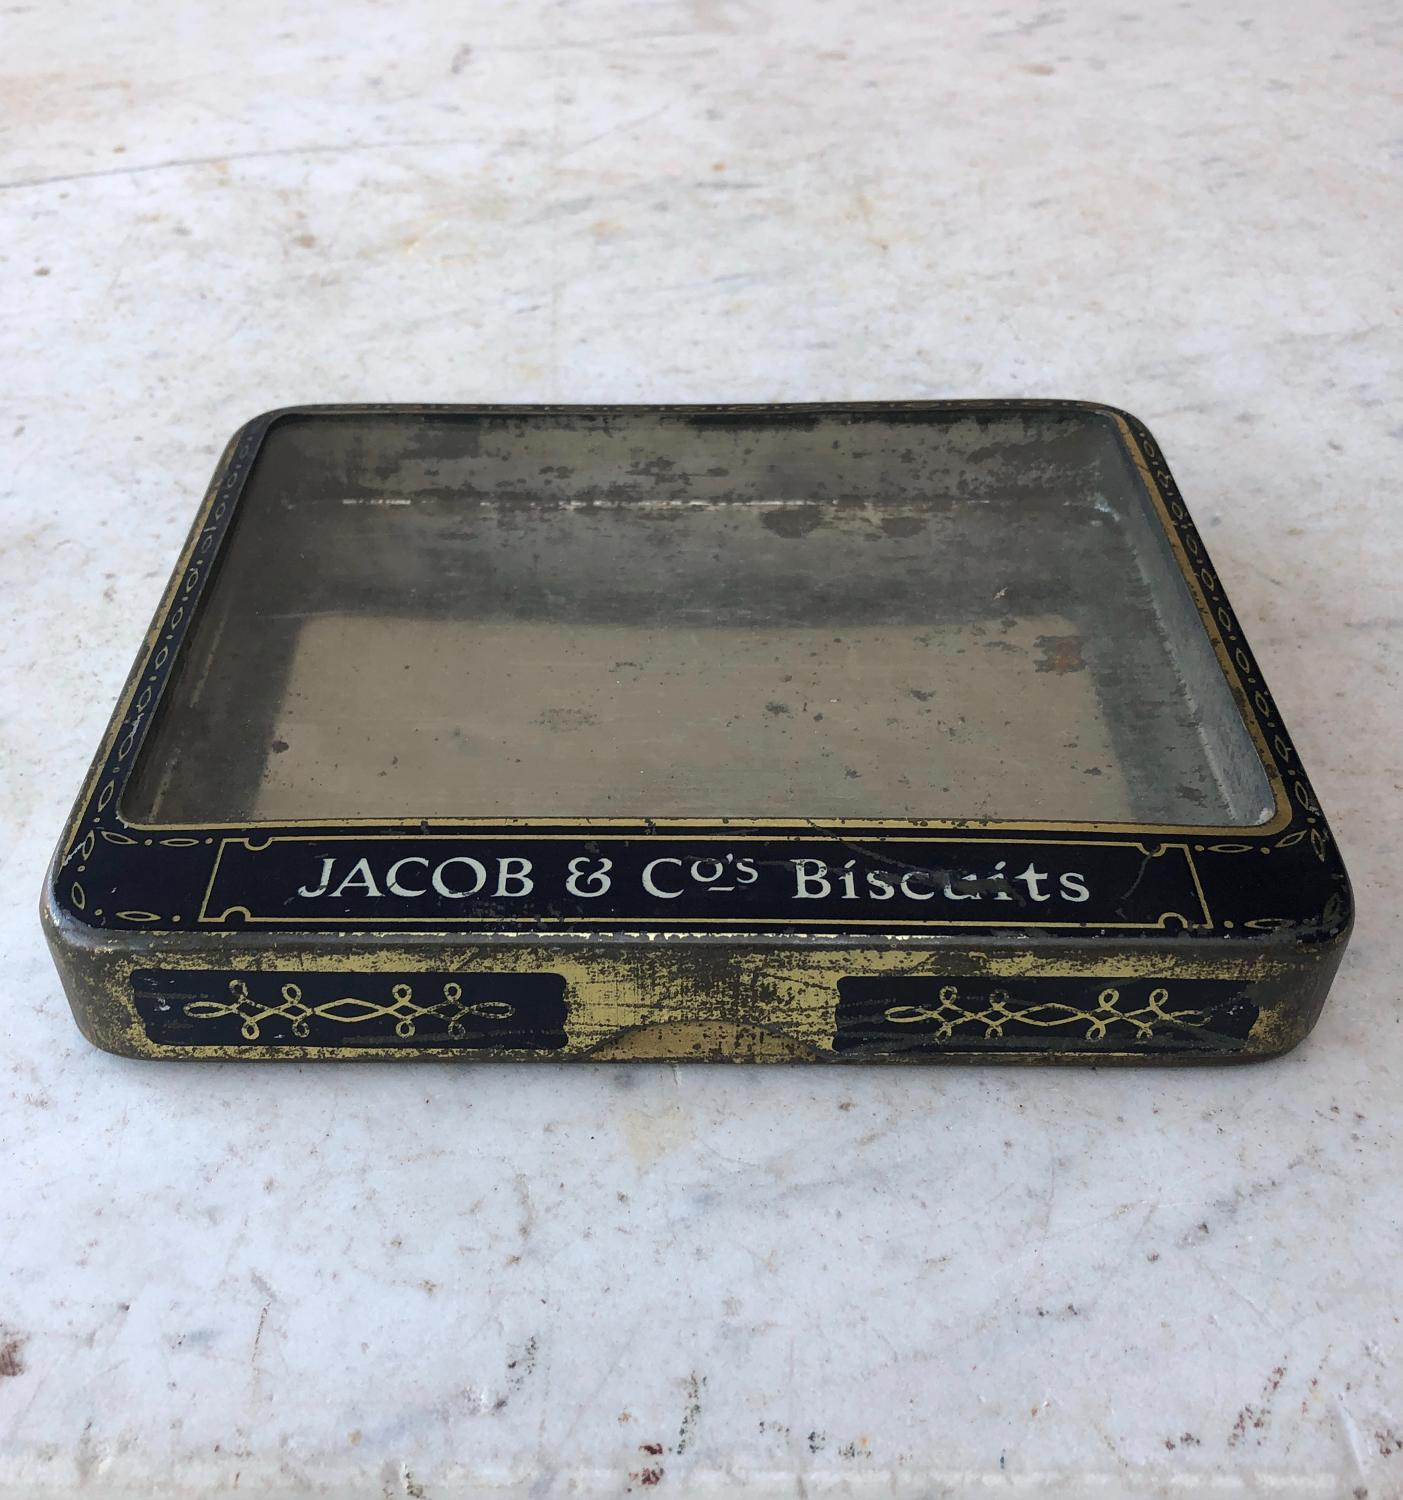 Early 20th Century Glass Top Advertising Tin - Jacob & Co Biscuits